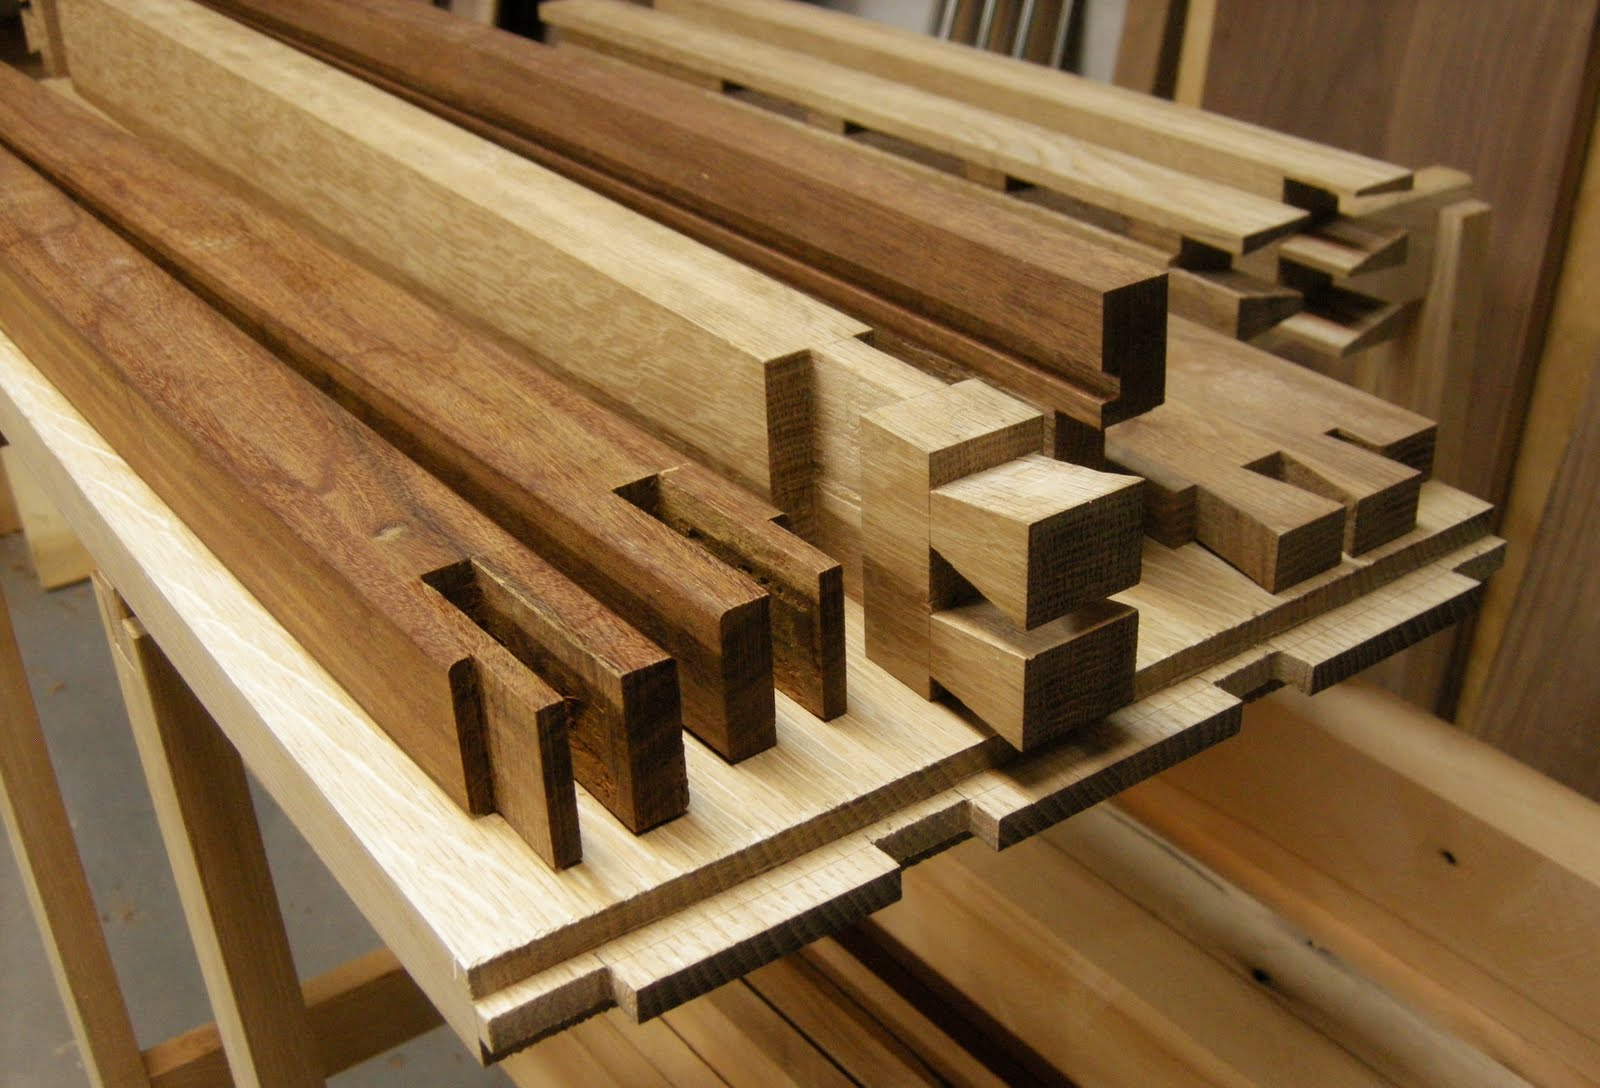 Folding work bench woodworking plans | norwegian wood